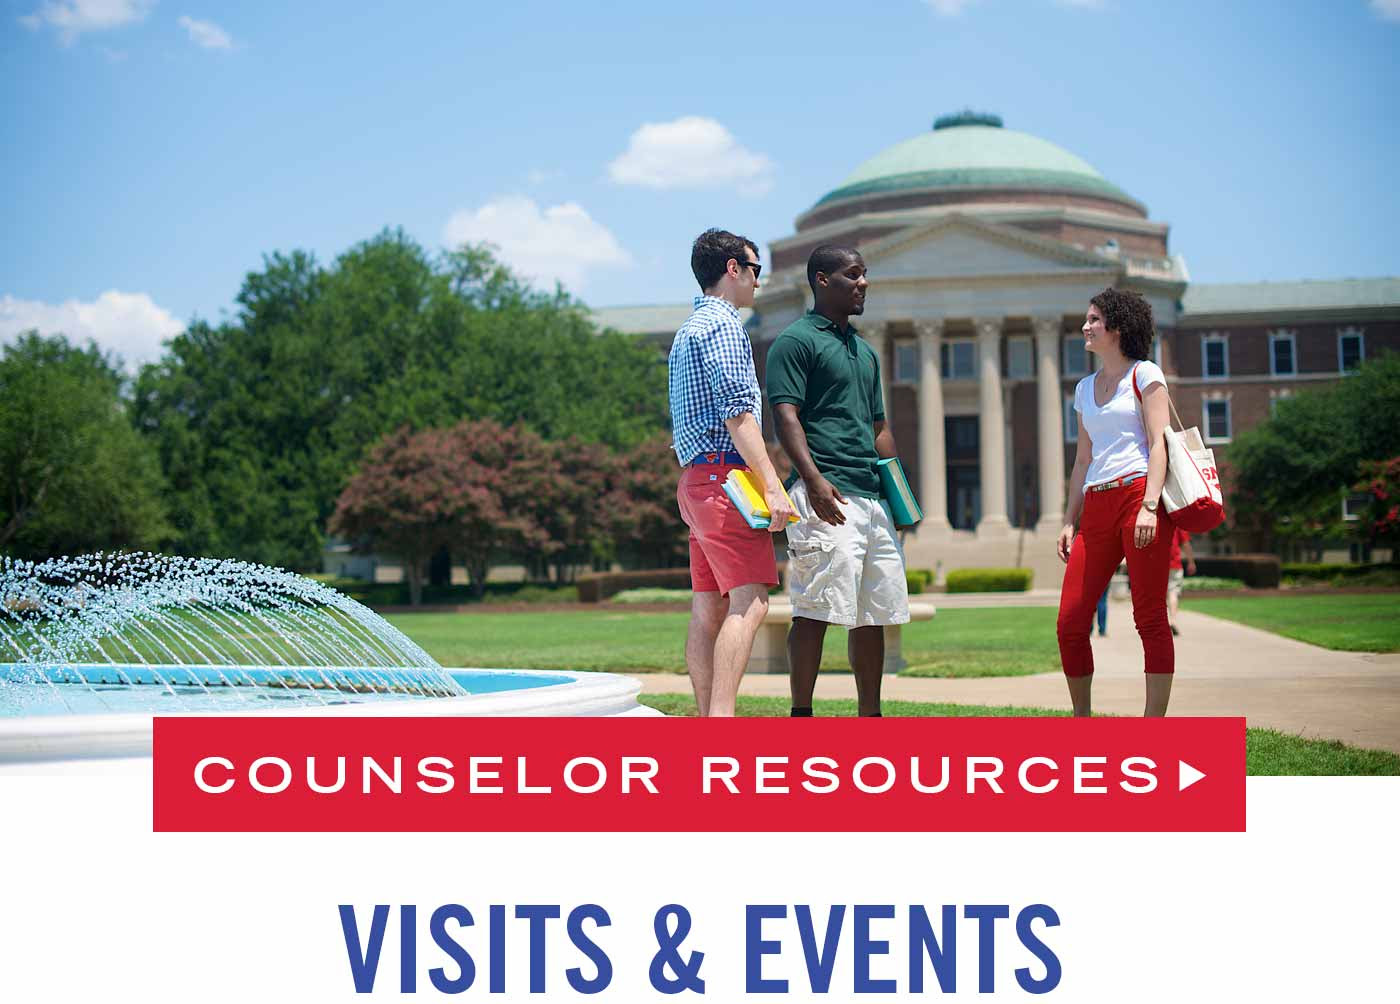 Counselor Resources »